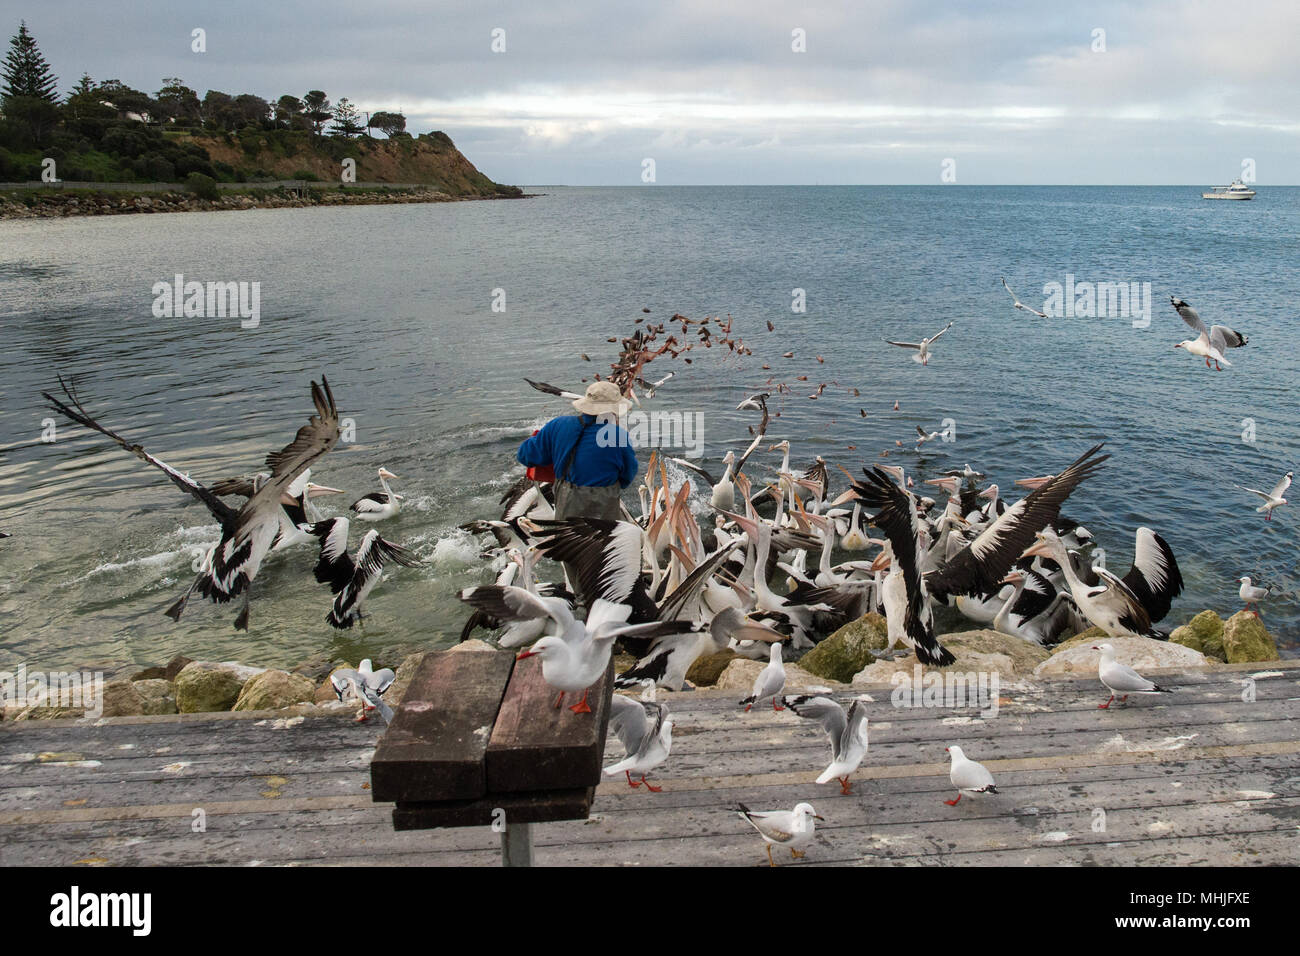 KINGSCOTE, AUSTRALIA - SEPTEMBER, 3 2015 - Pelican feeding in Kangaroo Island, every day at 5 pm this man feeds pelicans Stock Photo